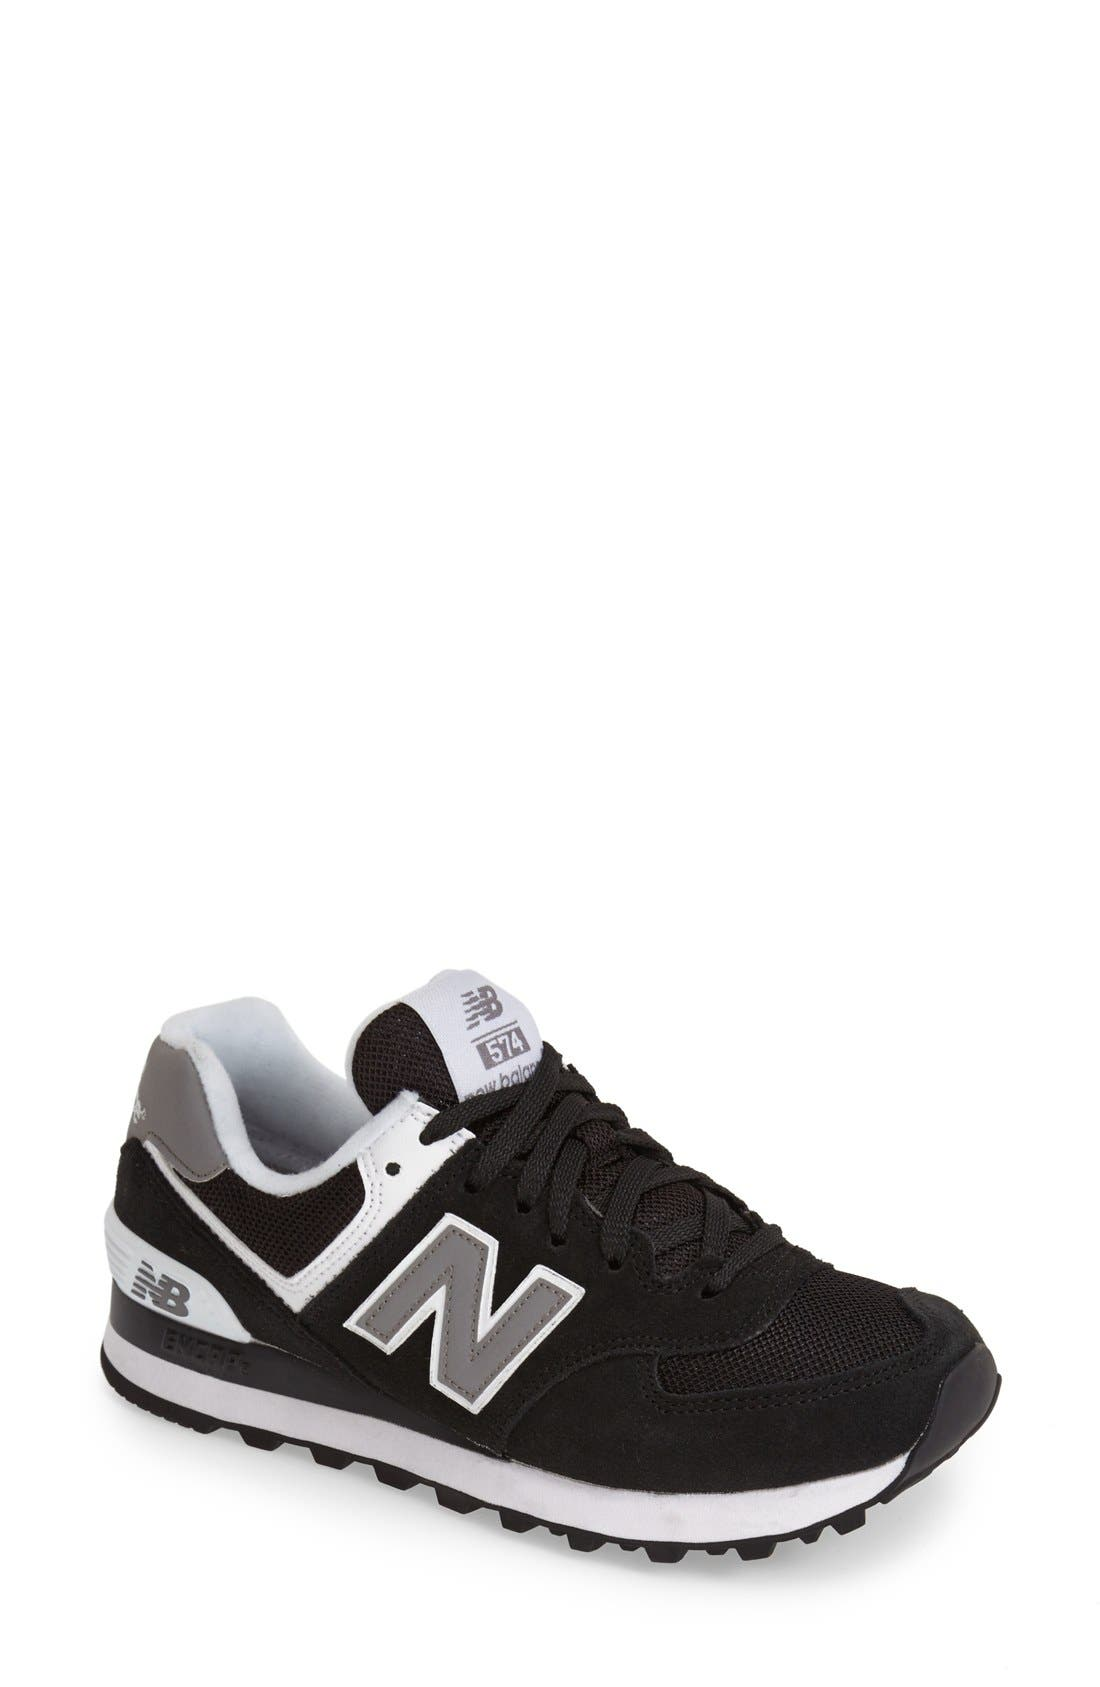 Alternate Image 1 Selected - New Balance '574 Classic' Sneaker (Women)